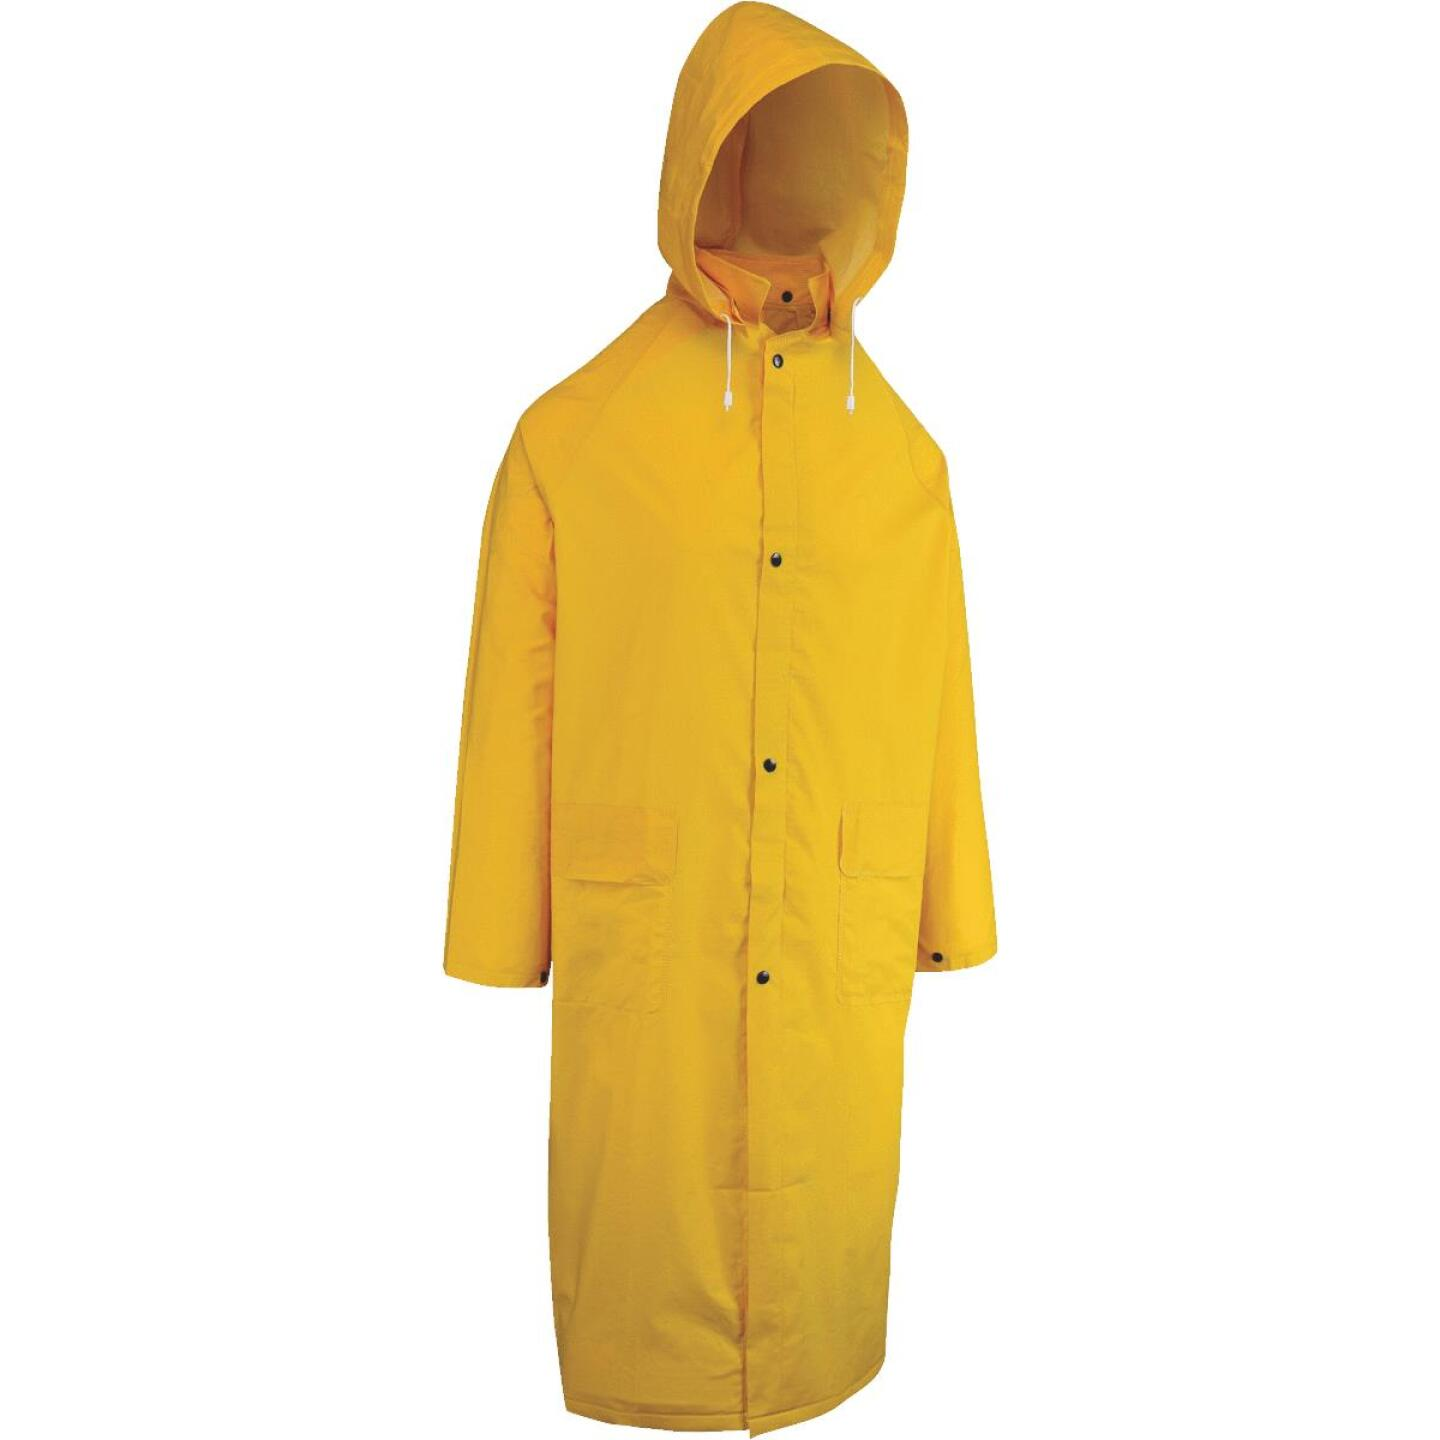 West Chester Large Safety Yellow PVC Trench Coat Image 1